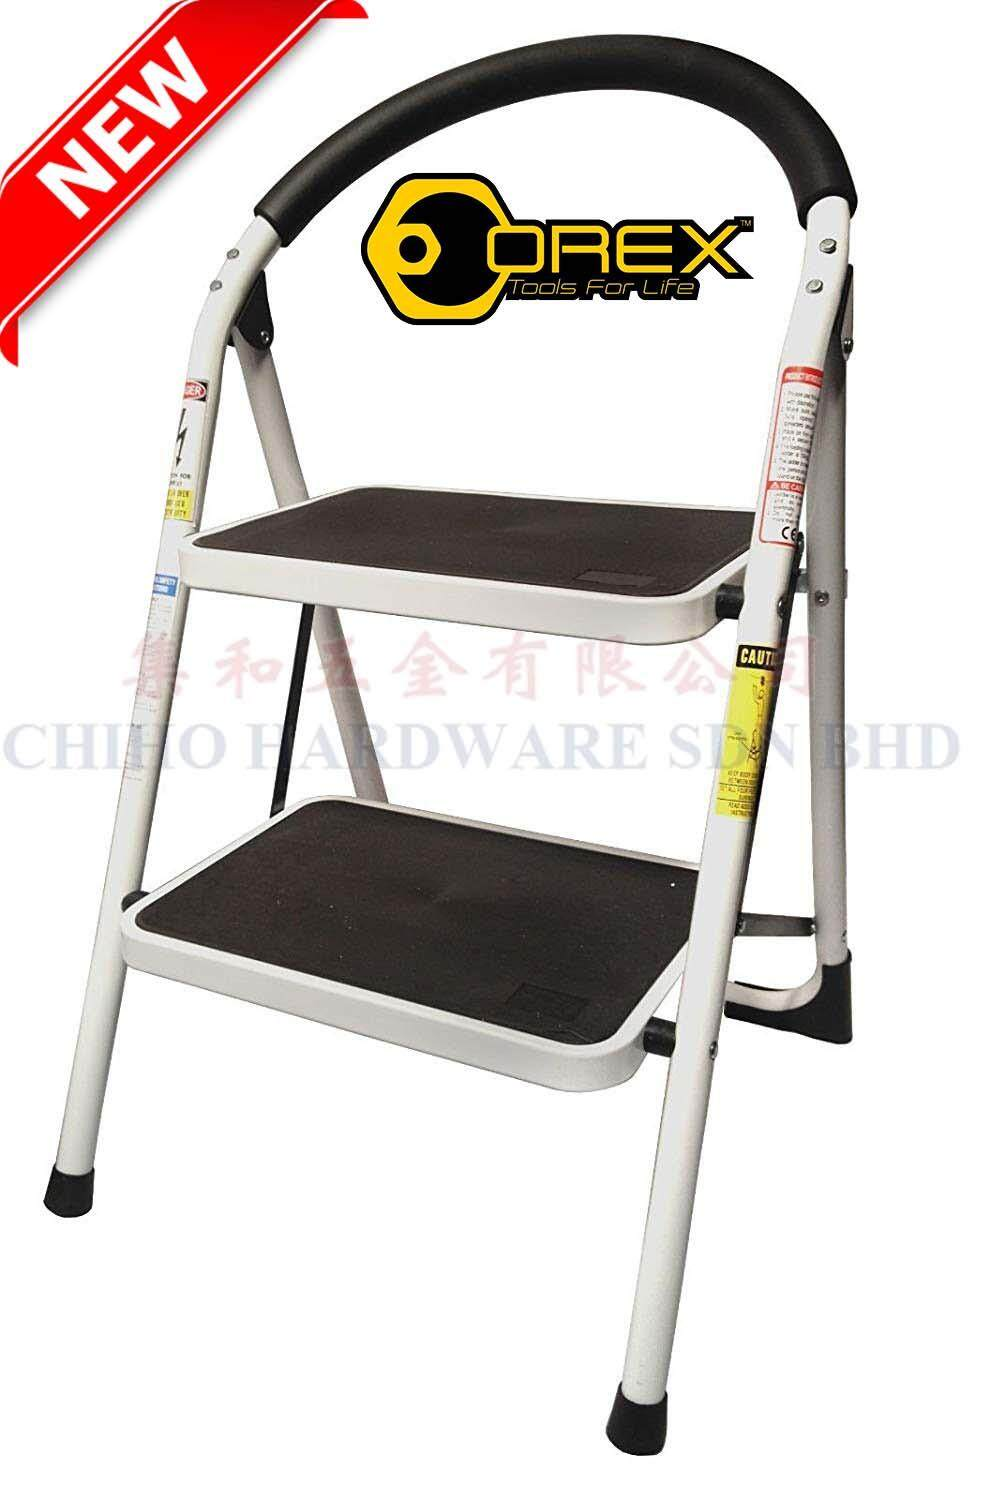 2 Step Steel Ladder with Handle Grip